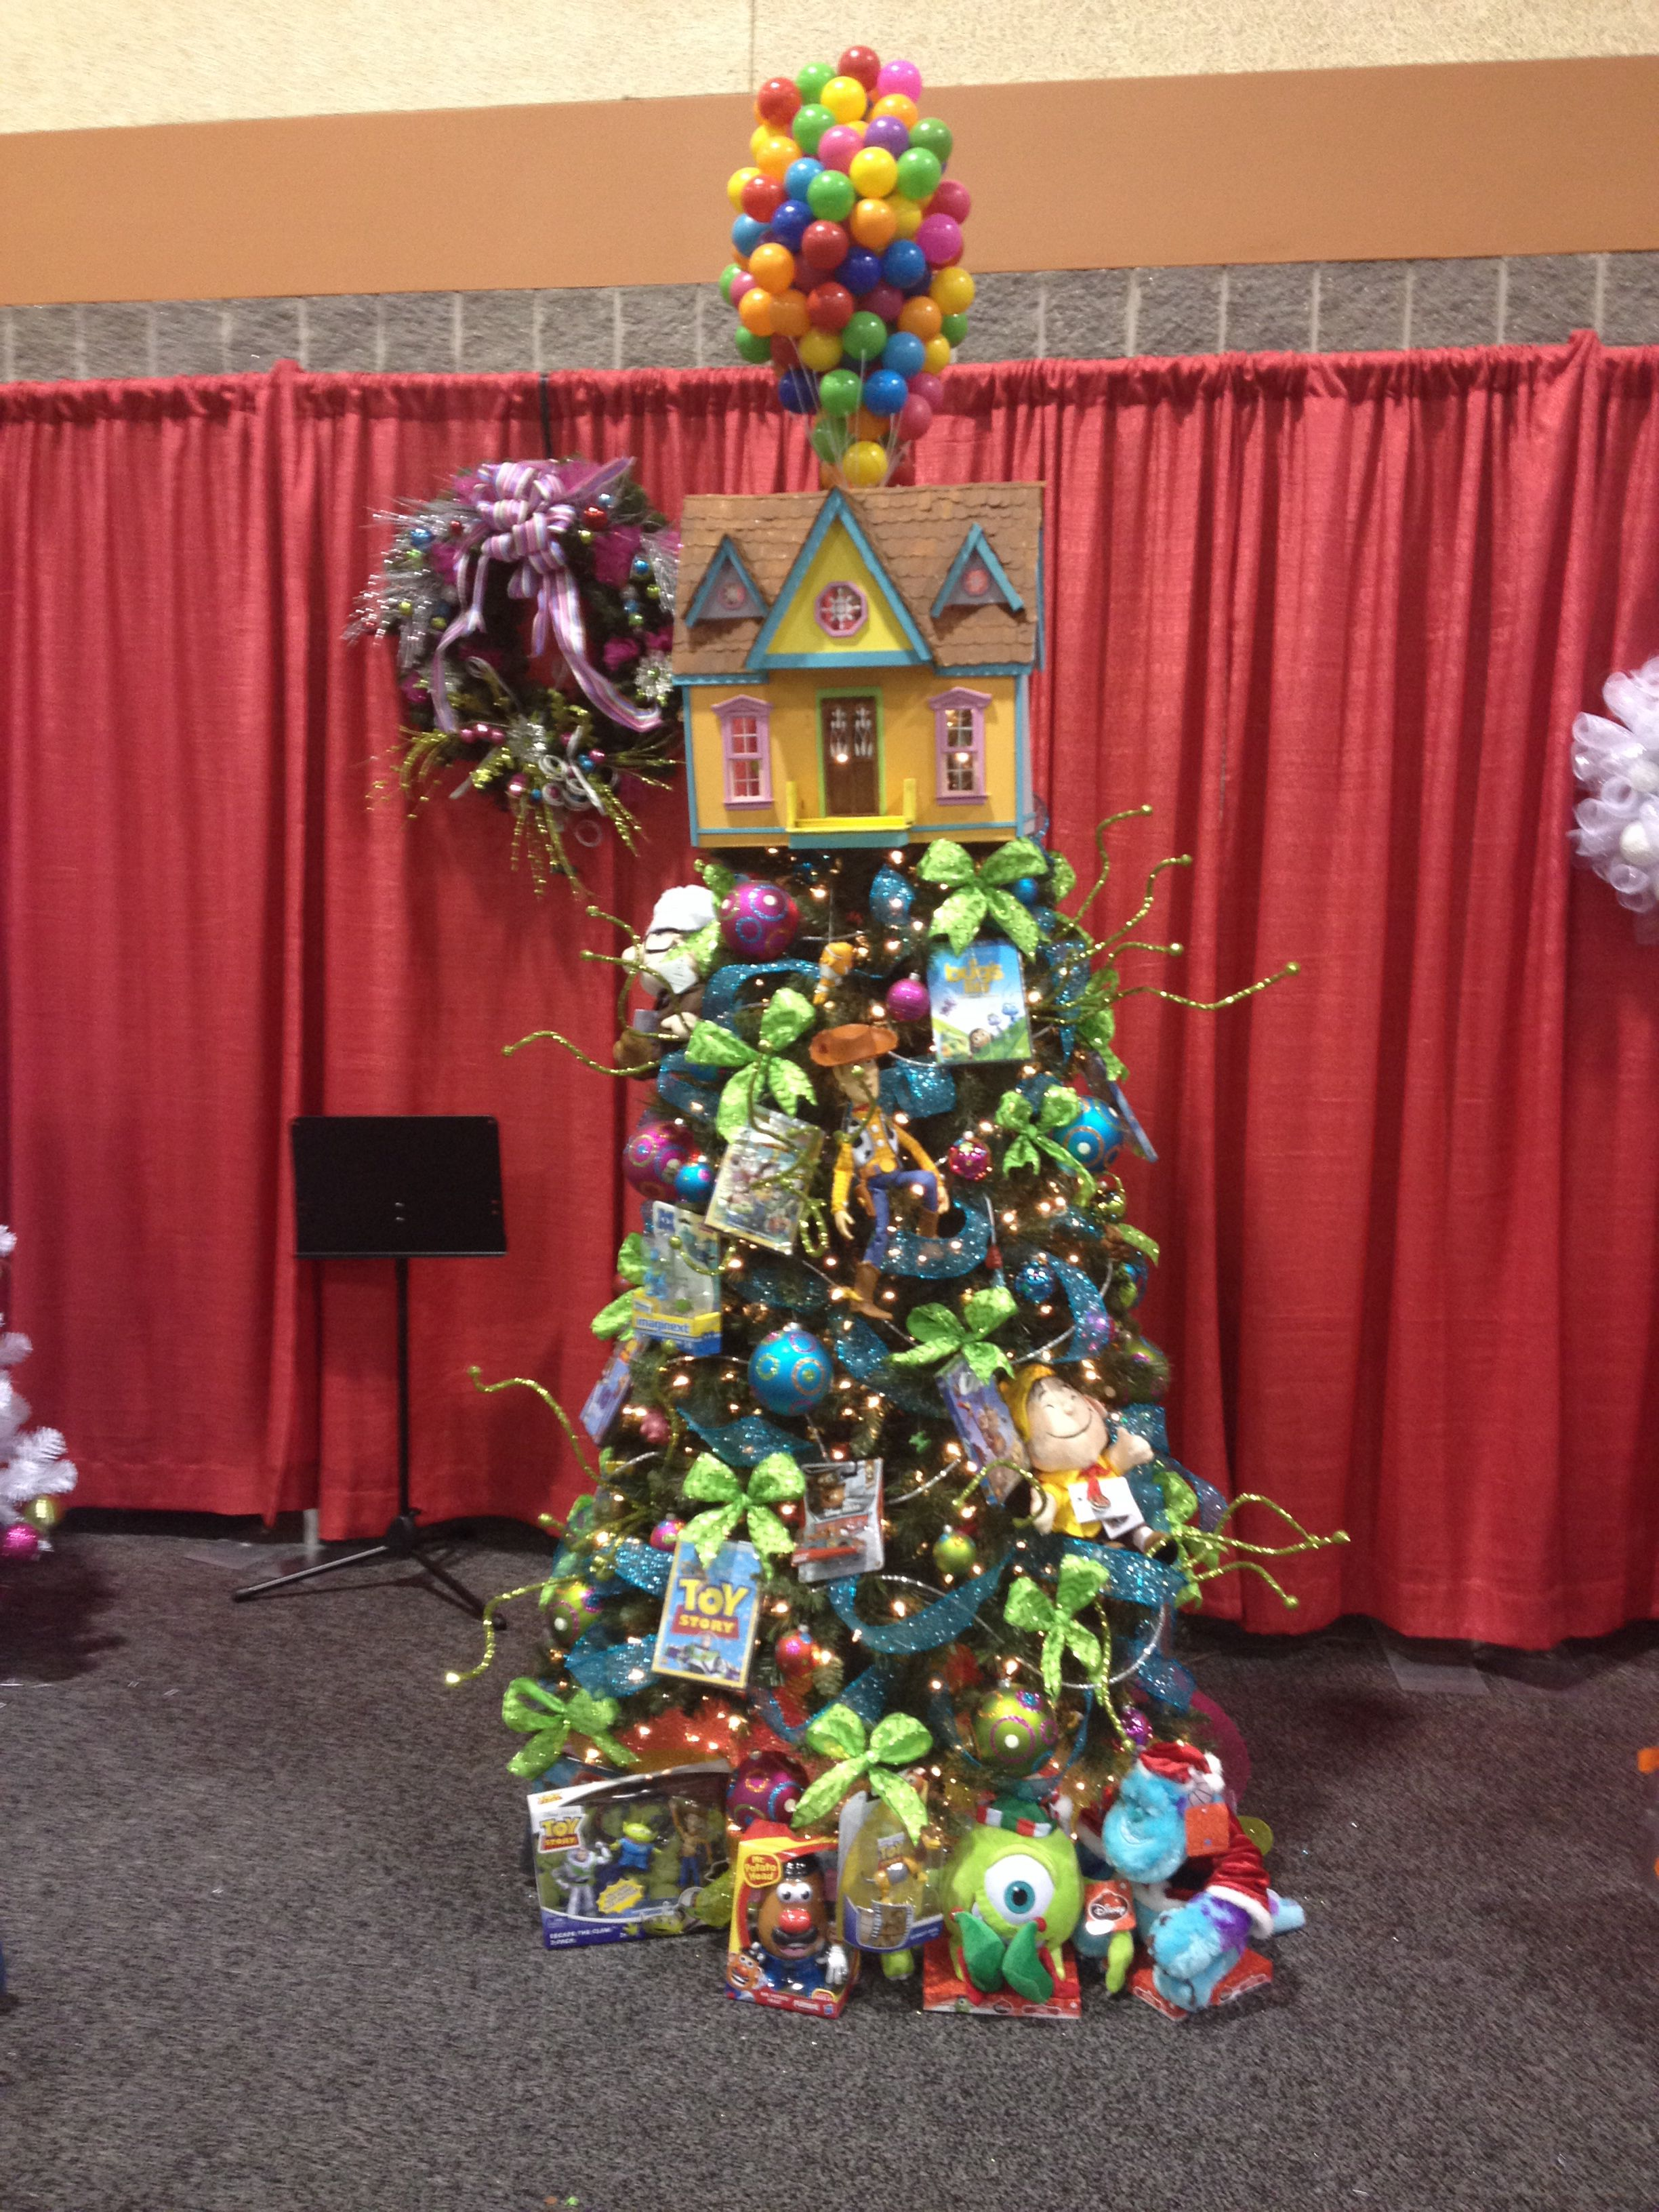 disney pixar themed christmas tree up balloon house tree topper